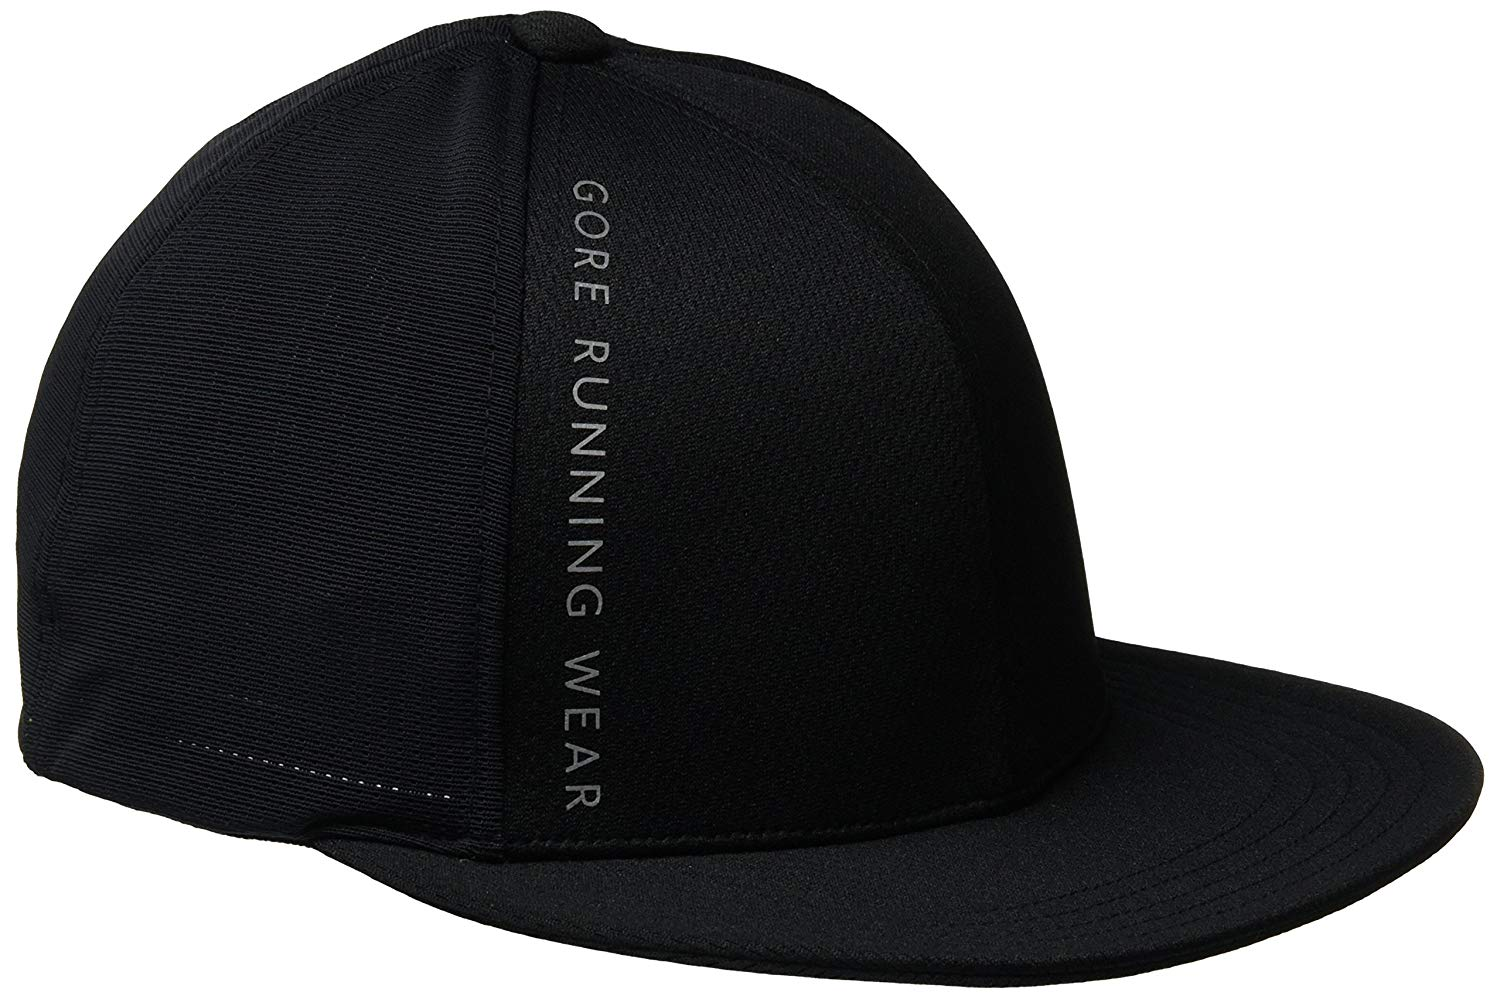 3b42e541954 Details about Gore Running Wear Women s Essential Baseball Cap Hat Black  One Size Fits All